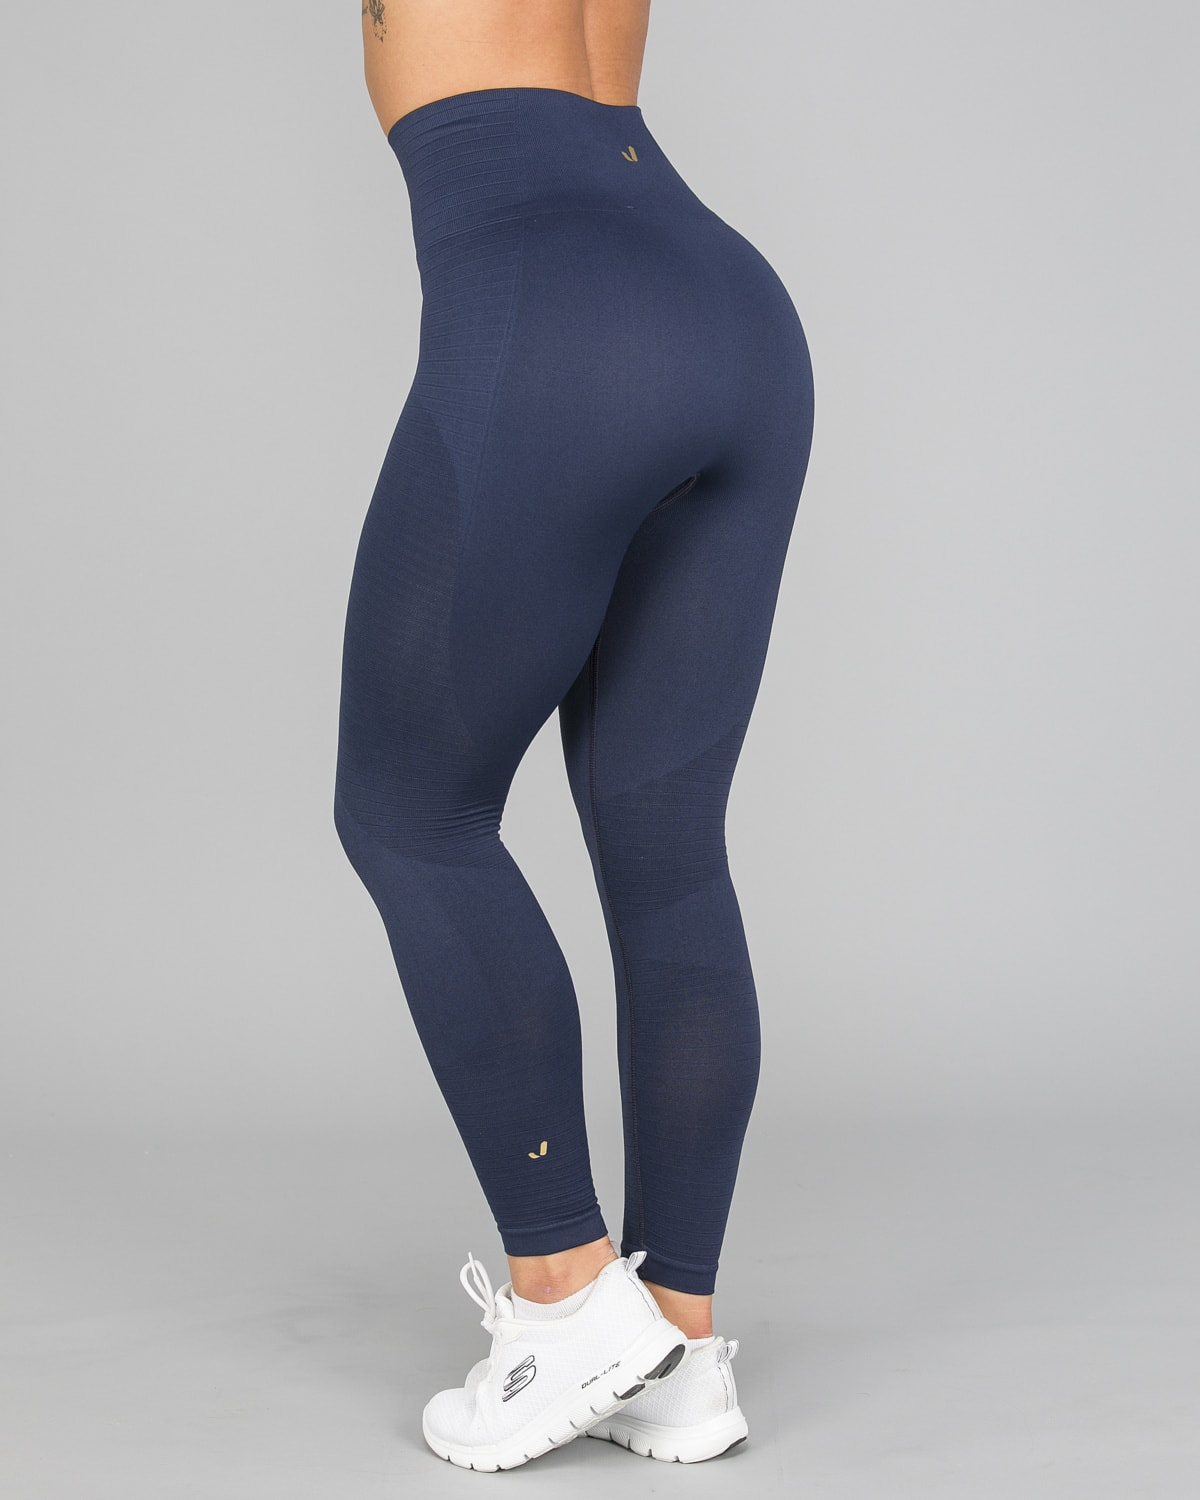 Jerf Gela 2.0 tights Navy Blue17